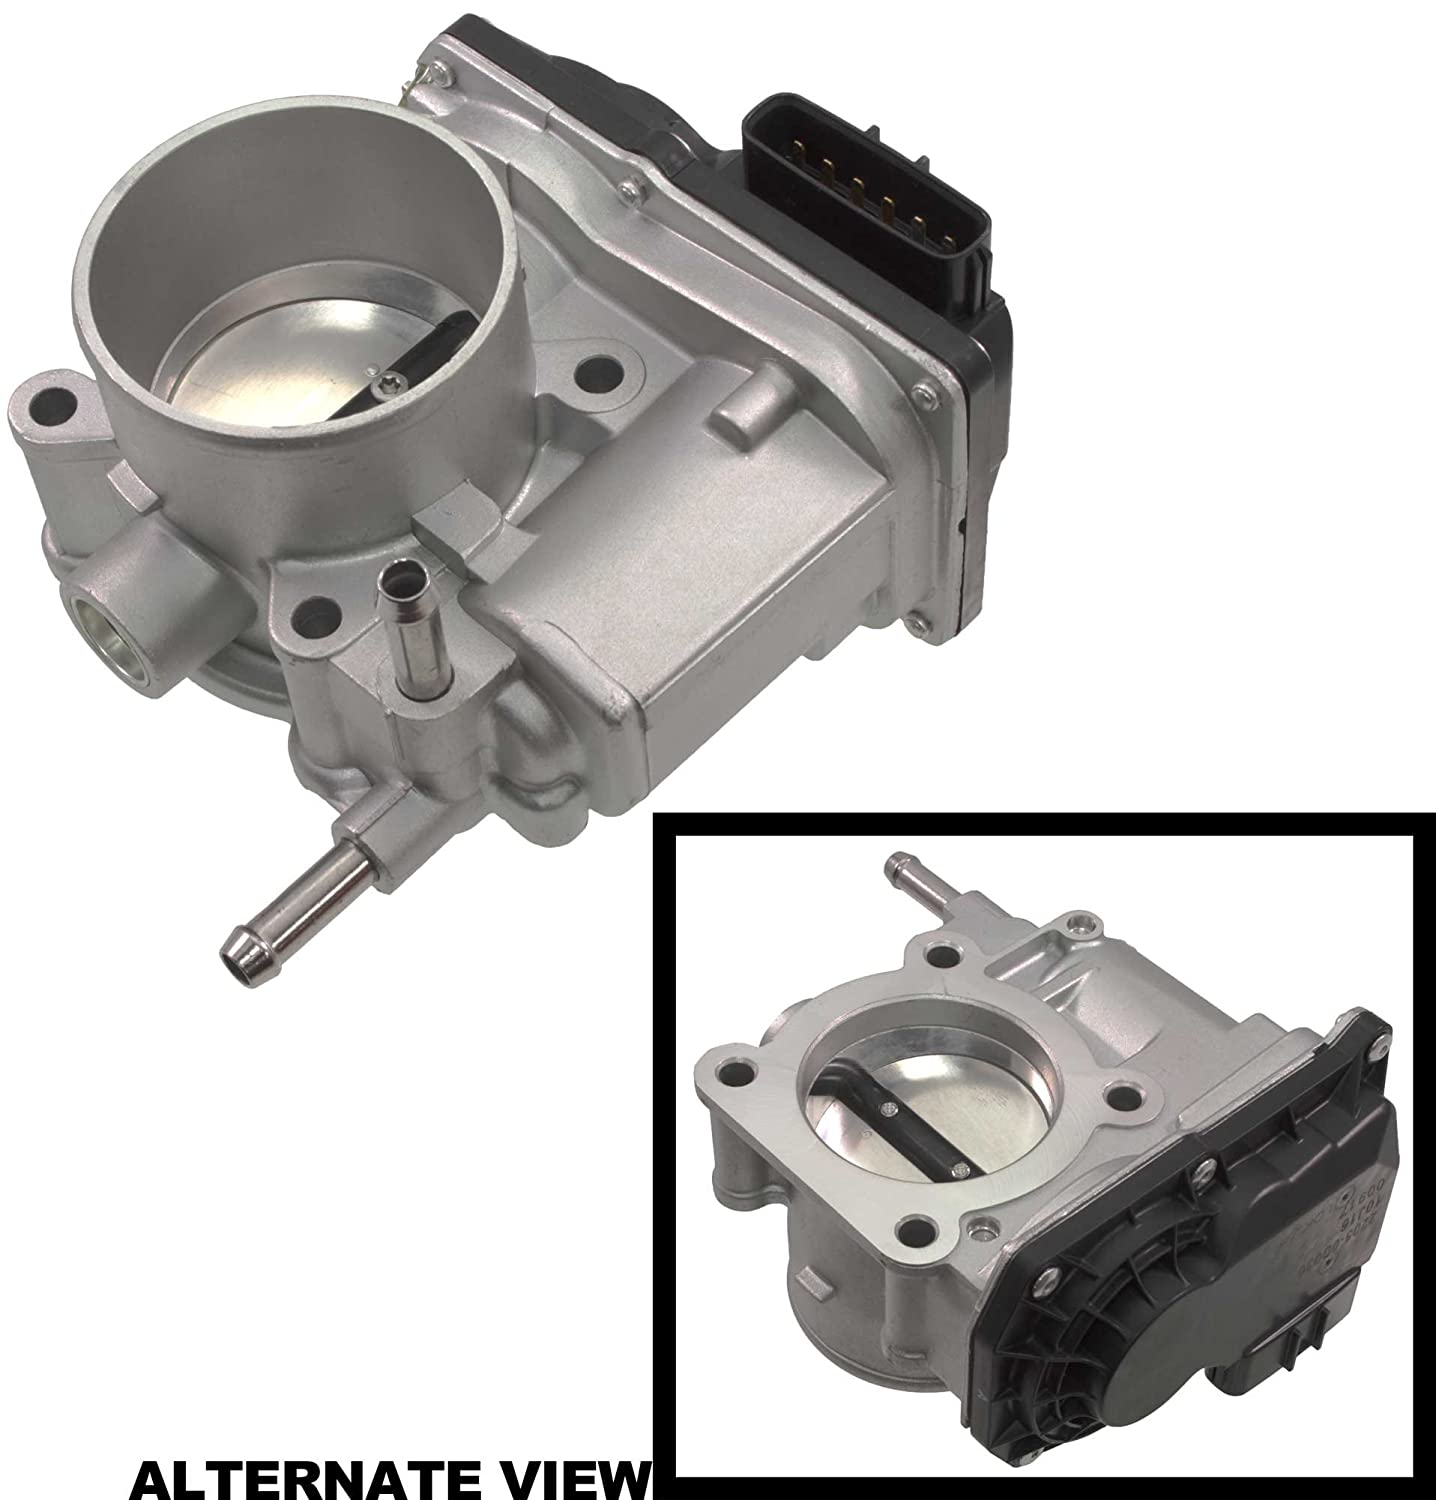 APDTY 112807 Electronic Throttle Body Assembly Actuator Valve Fits 1.8l Engine On 2005-2008 Toyota Corolla / 2005-2008 Toyota Matrix (Replaces Toyota 22030-22041, 2203022041)